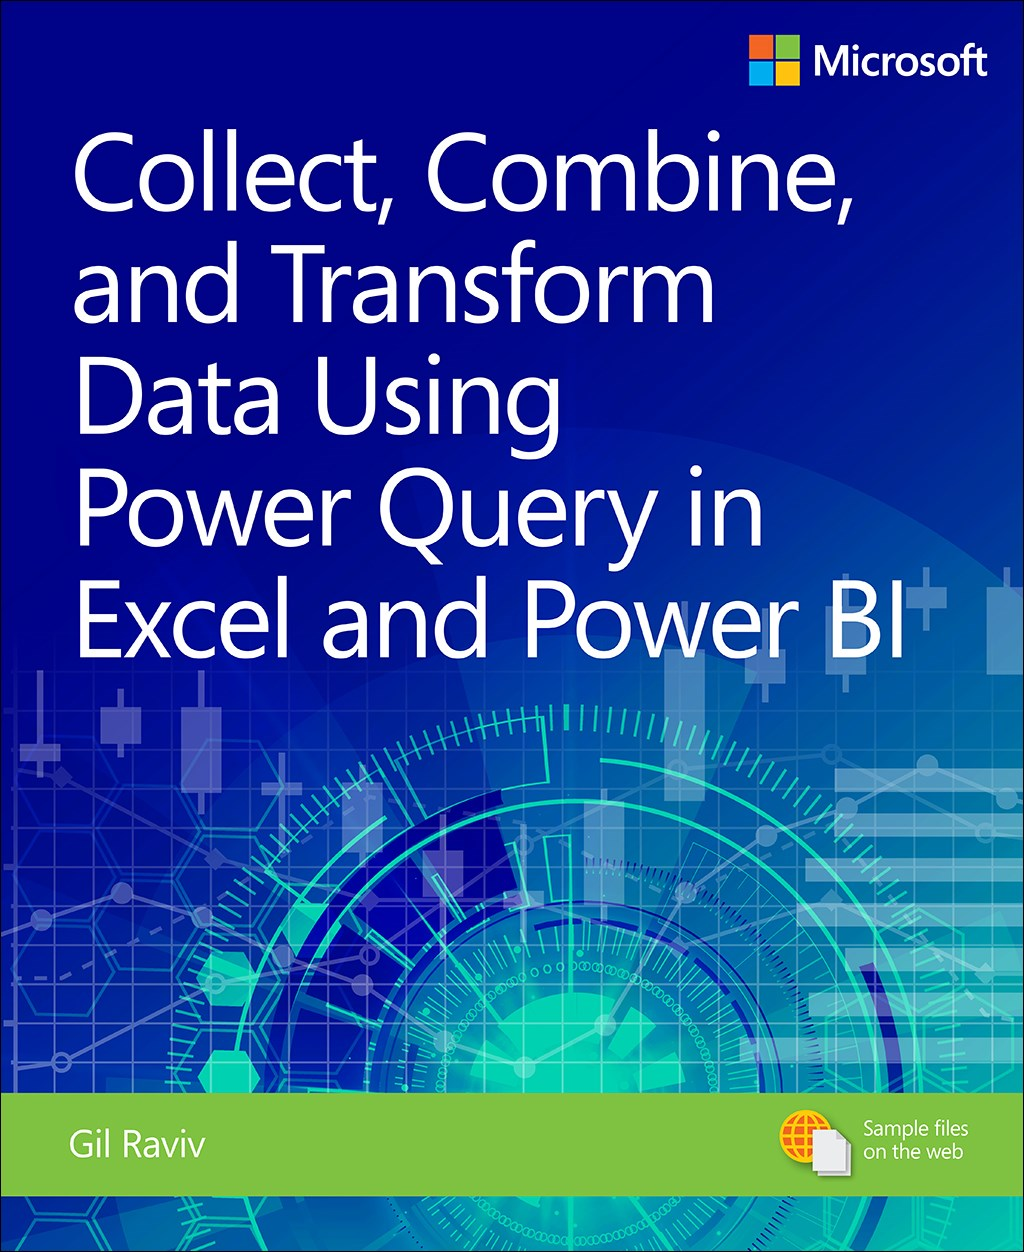 Collect, Combine, and Transform Data Using Power Query in Excel and Power BI